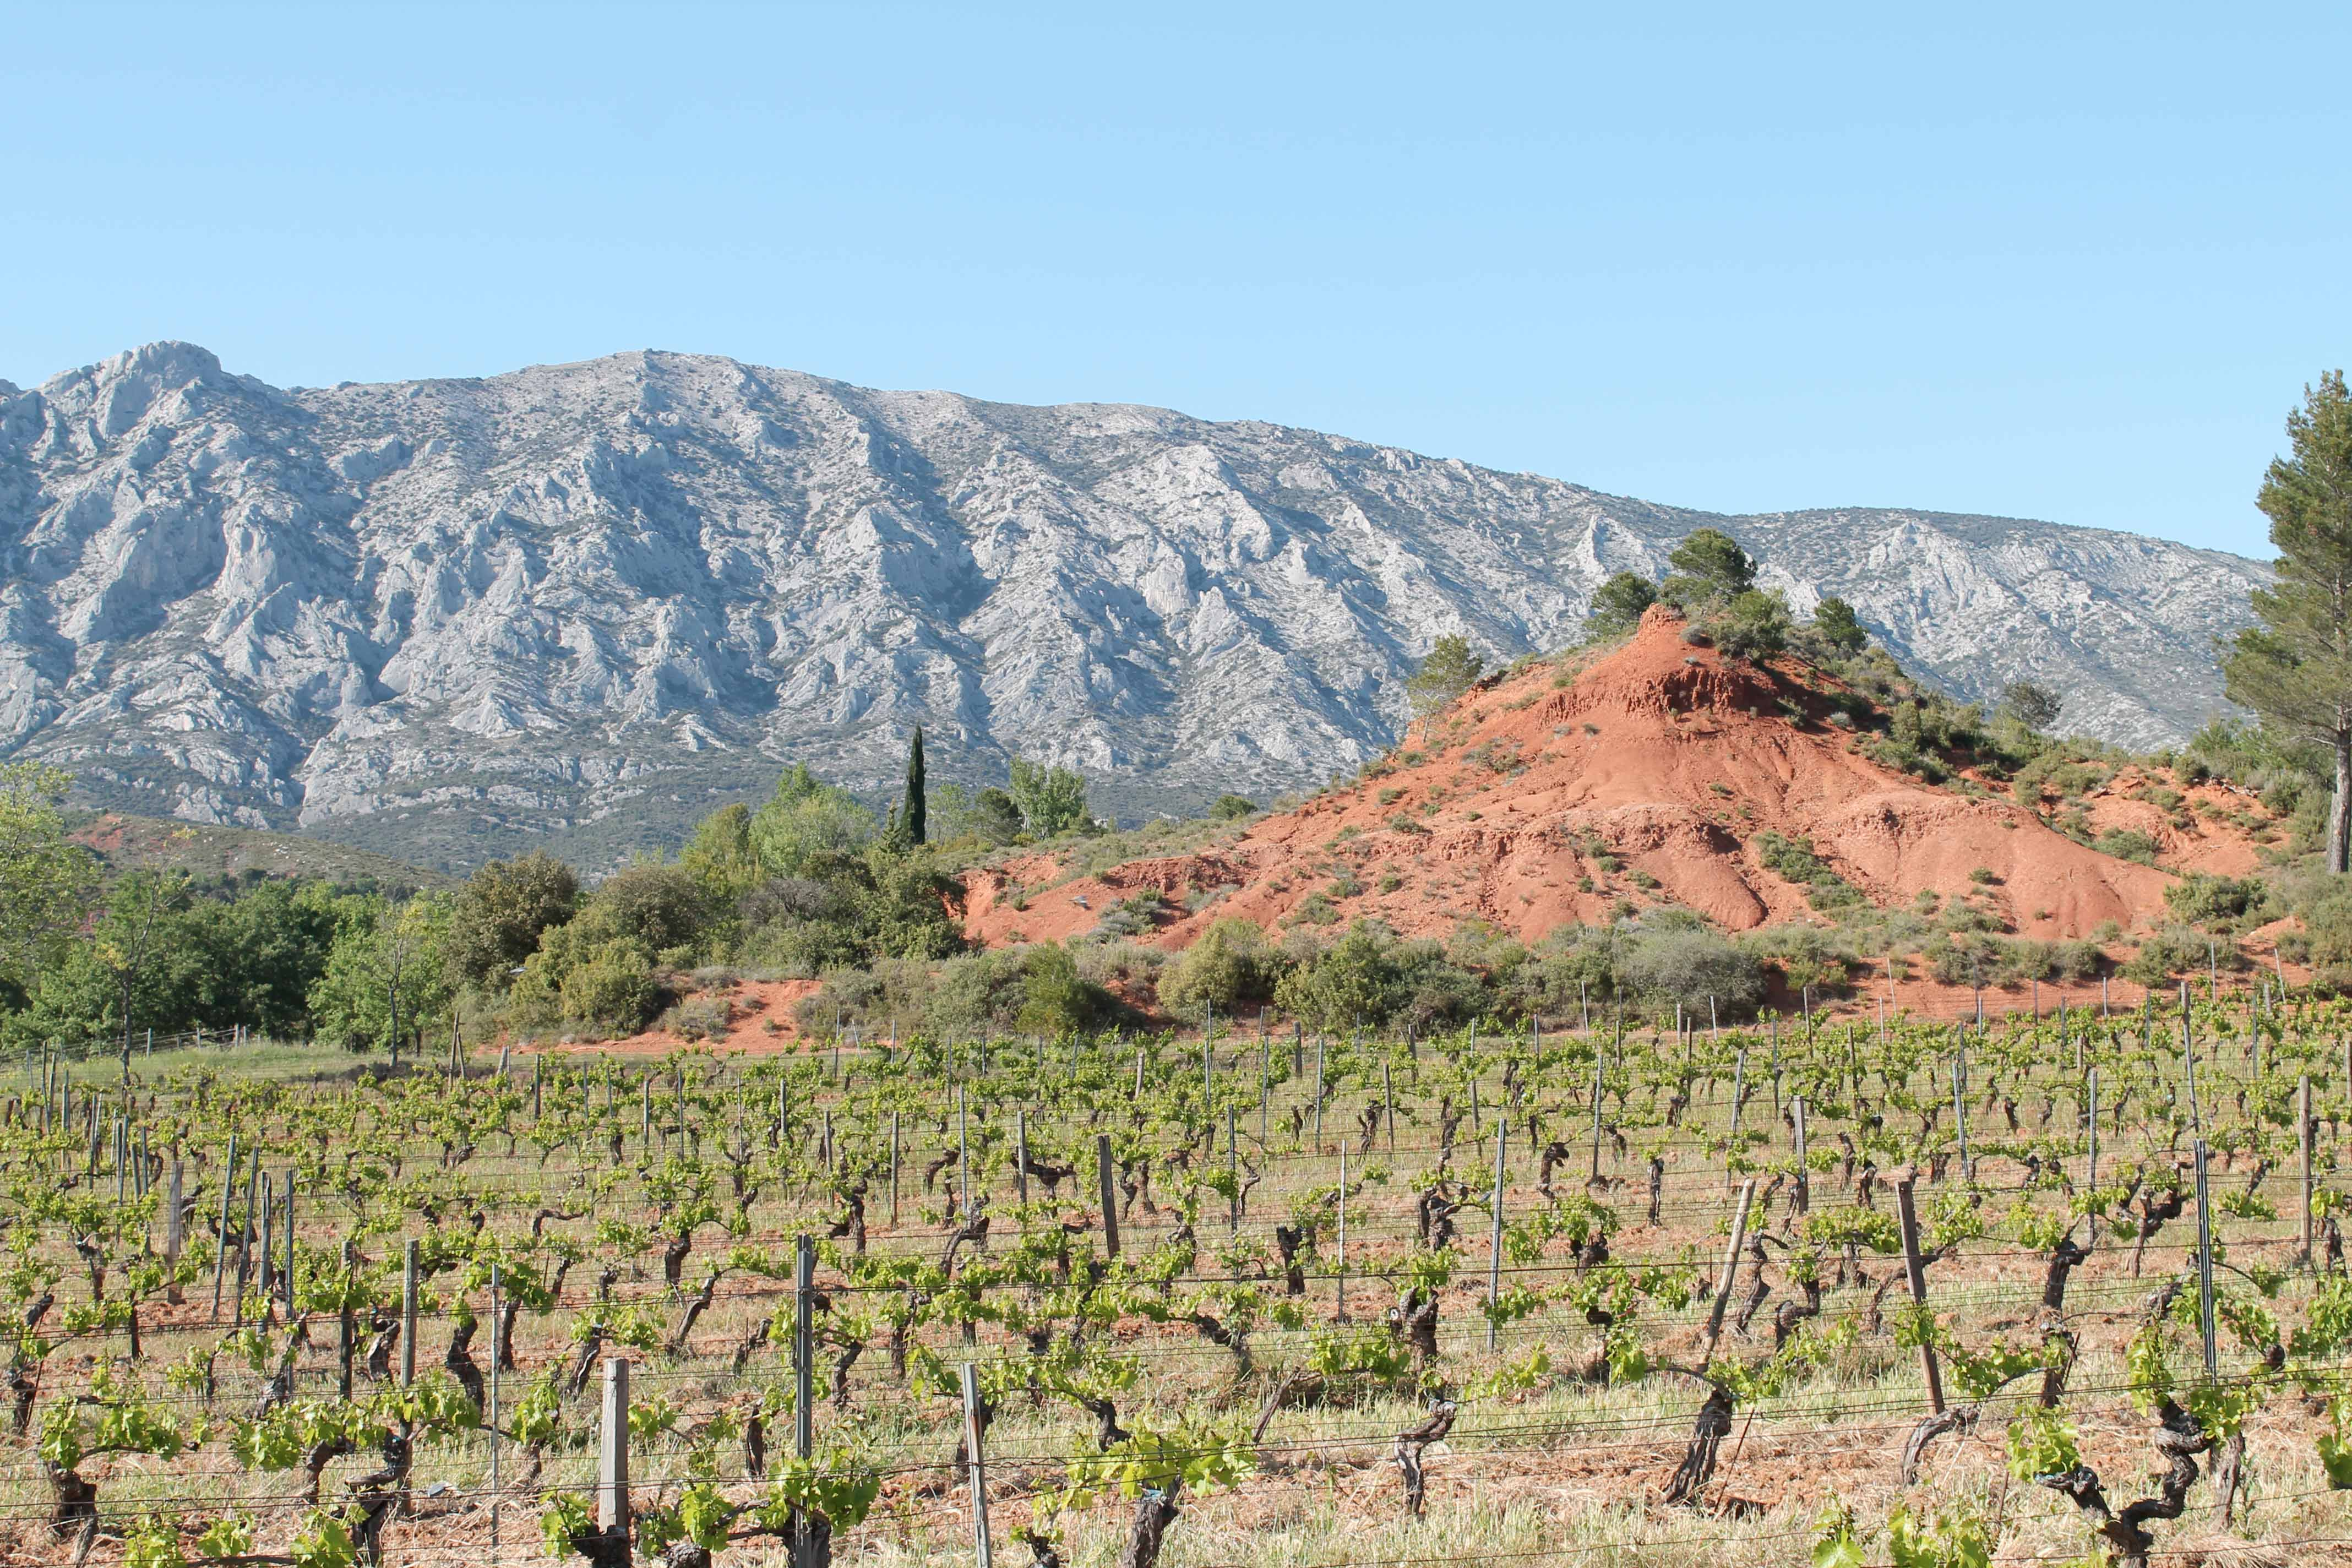 Wine and bike excursion, vineyards with Mount Sainte Victoire